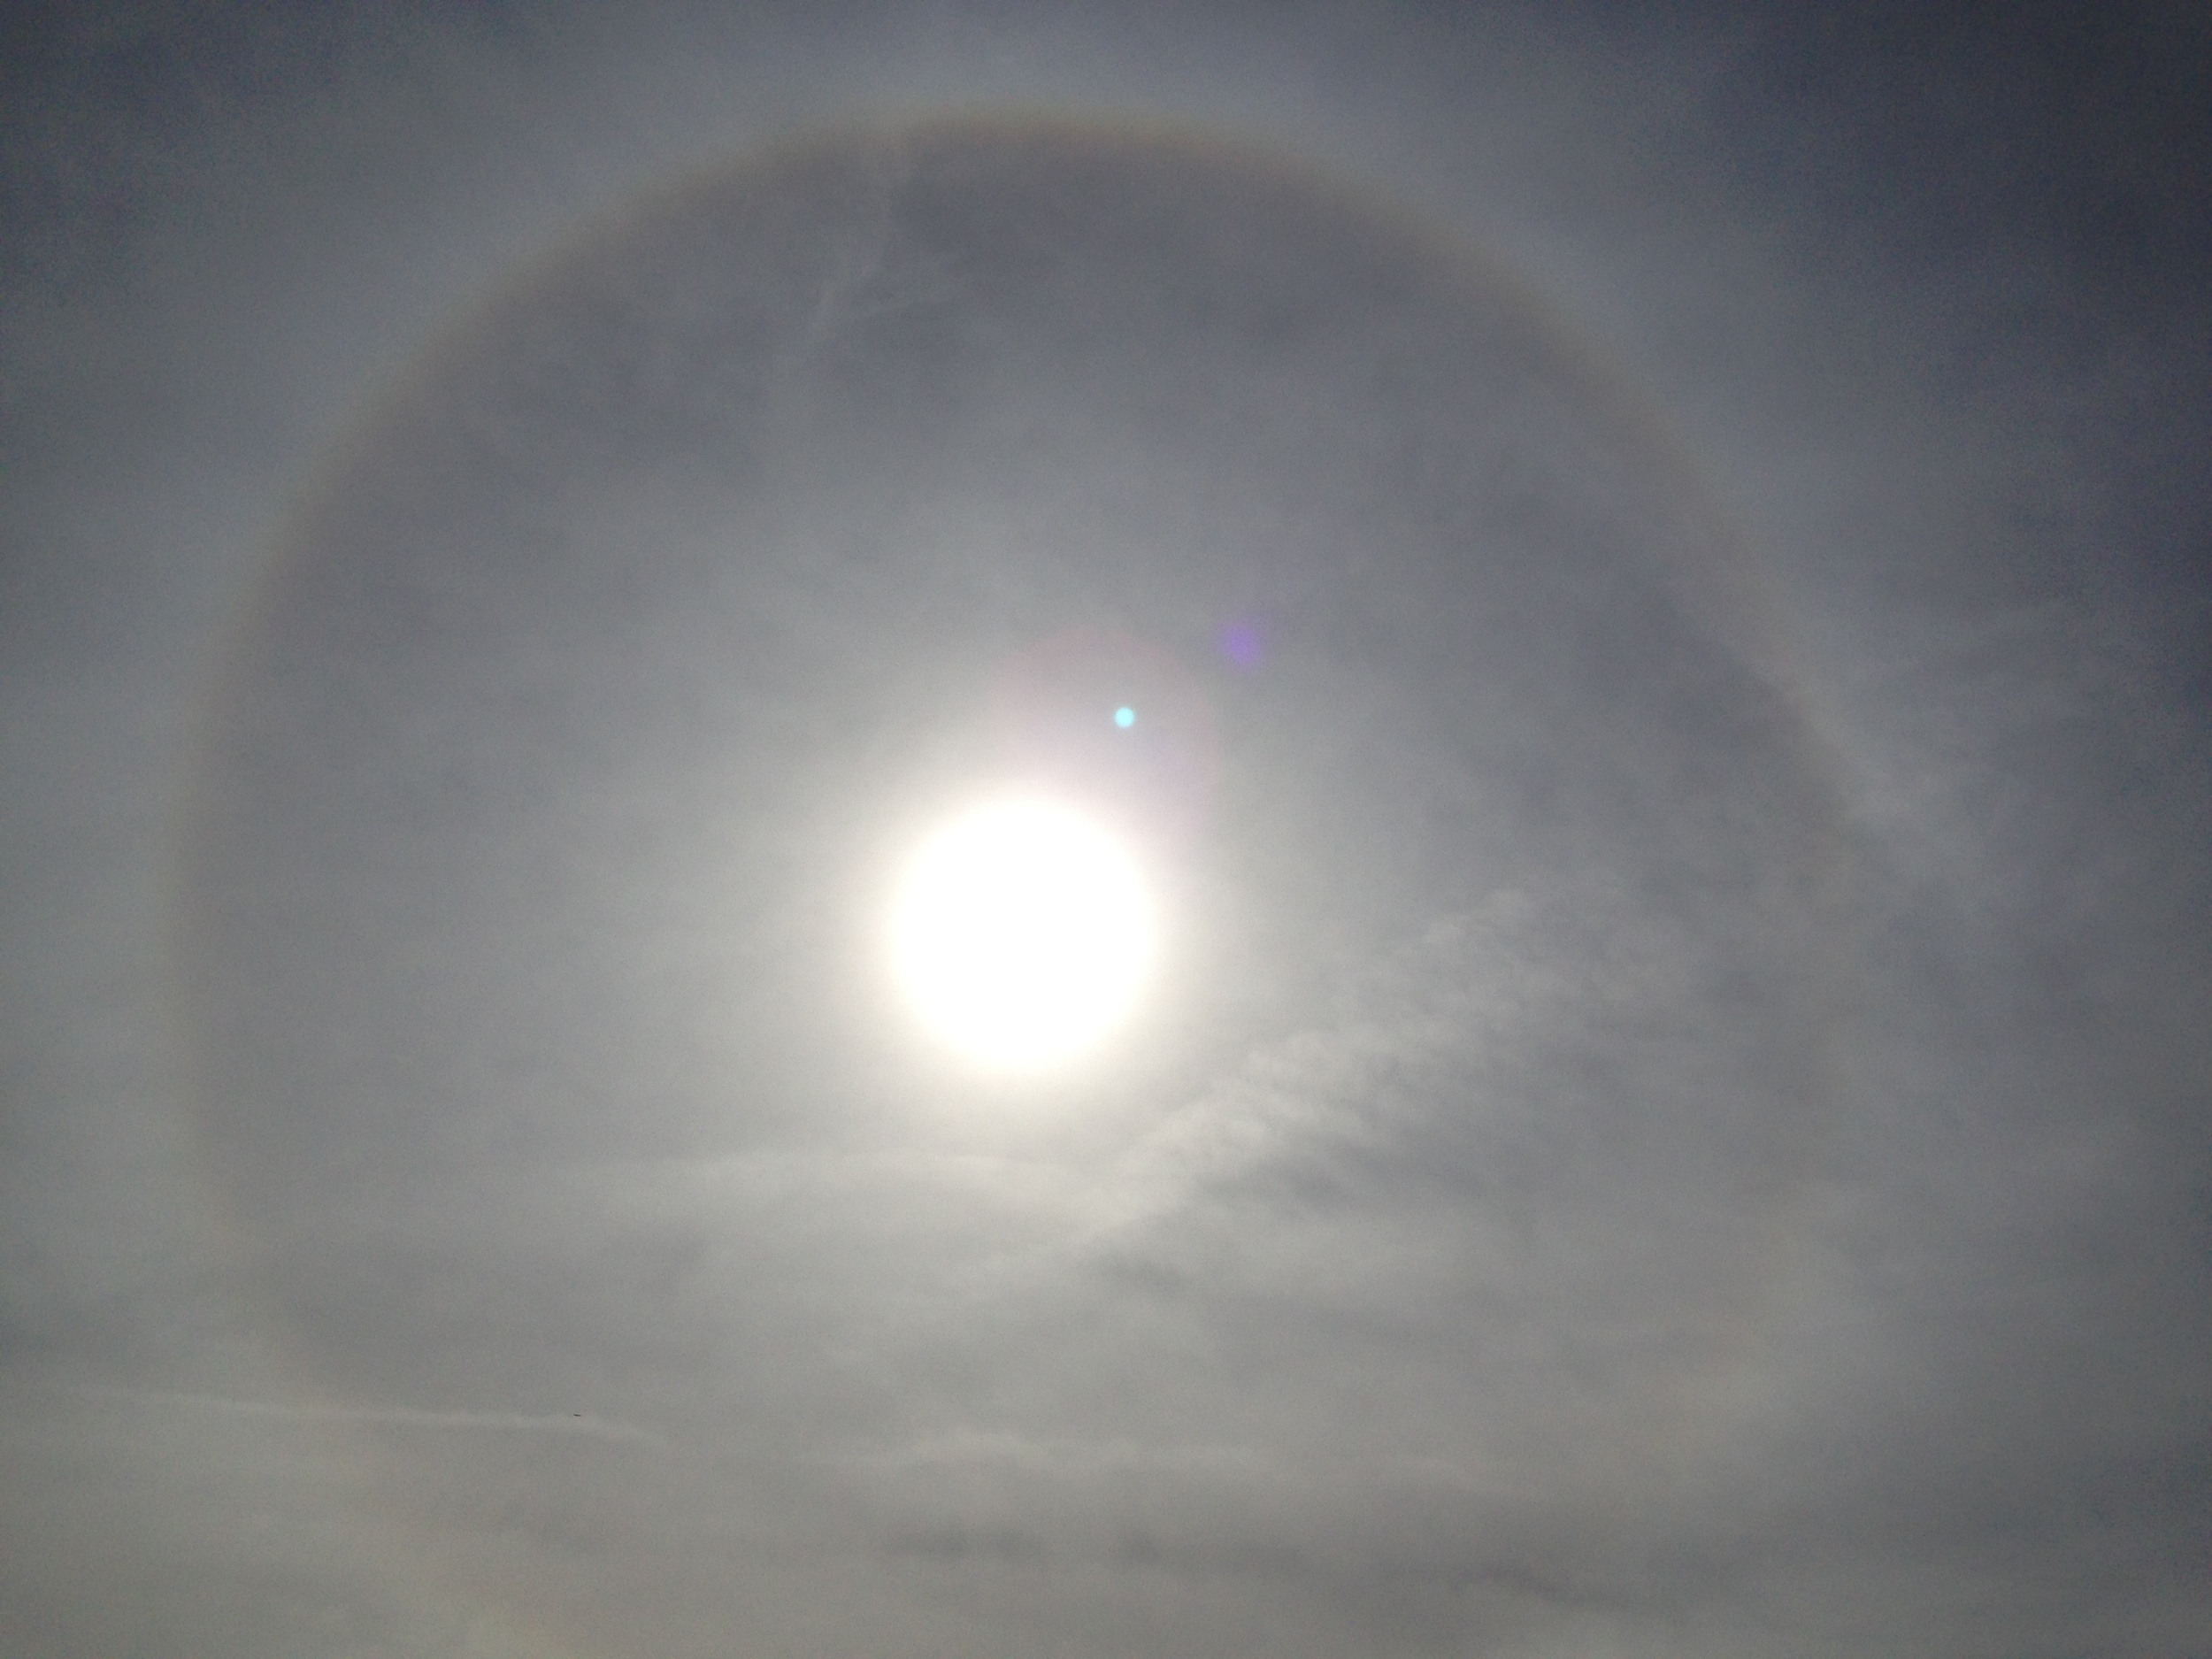 First time seeing a circled rainbow, is there a name for this beautiful sight? Sunbow?